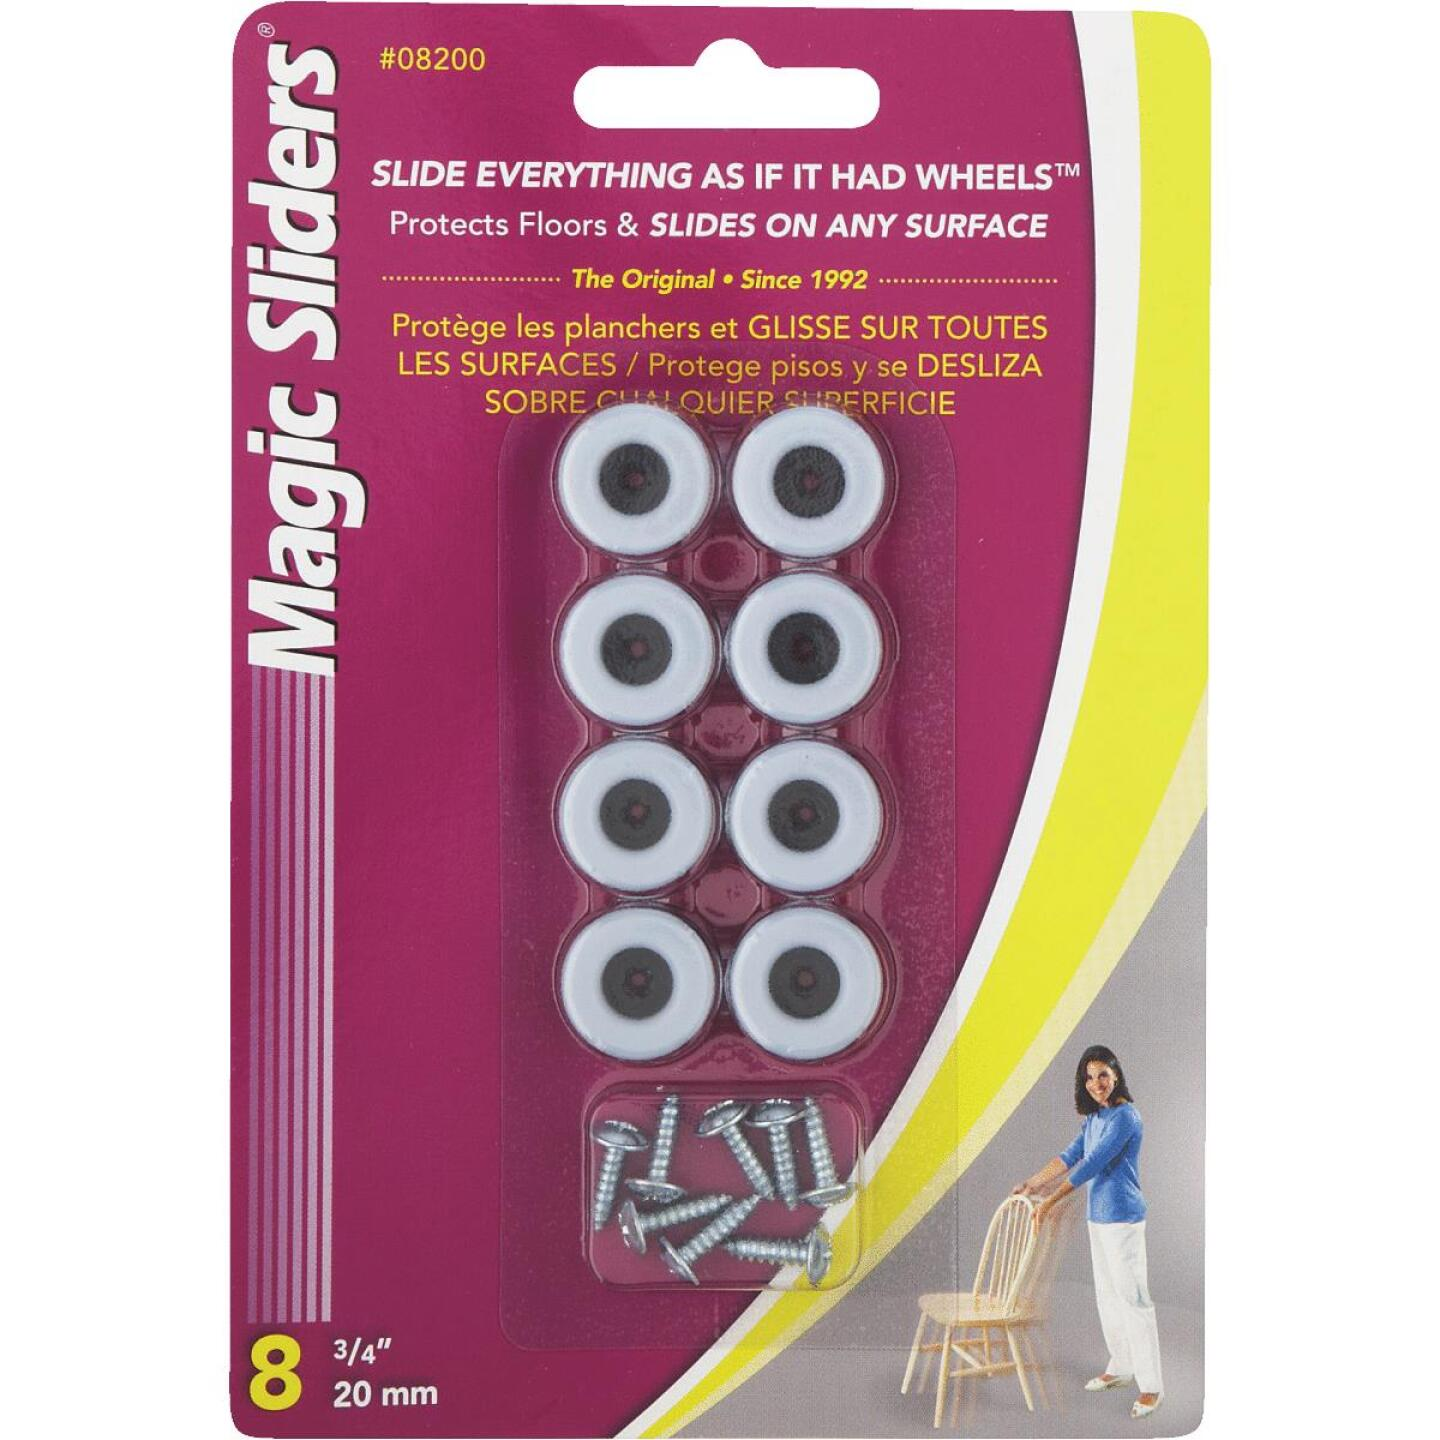 Magic Sliders 3/4 In. Round Screw on Furniture Glide,(8-Pack) Image 1